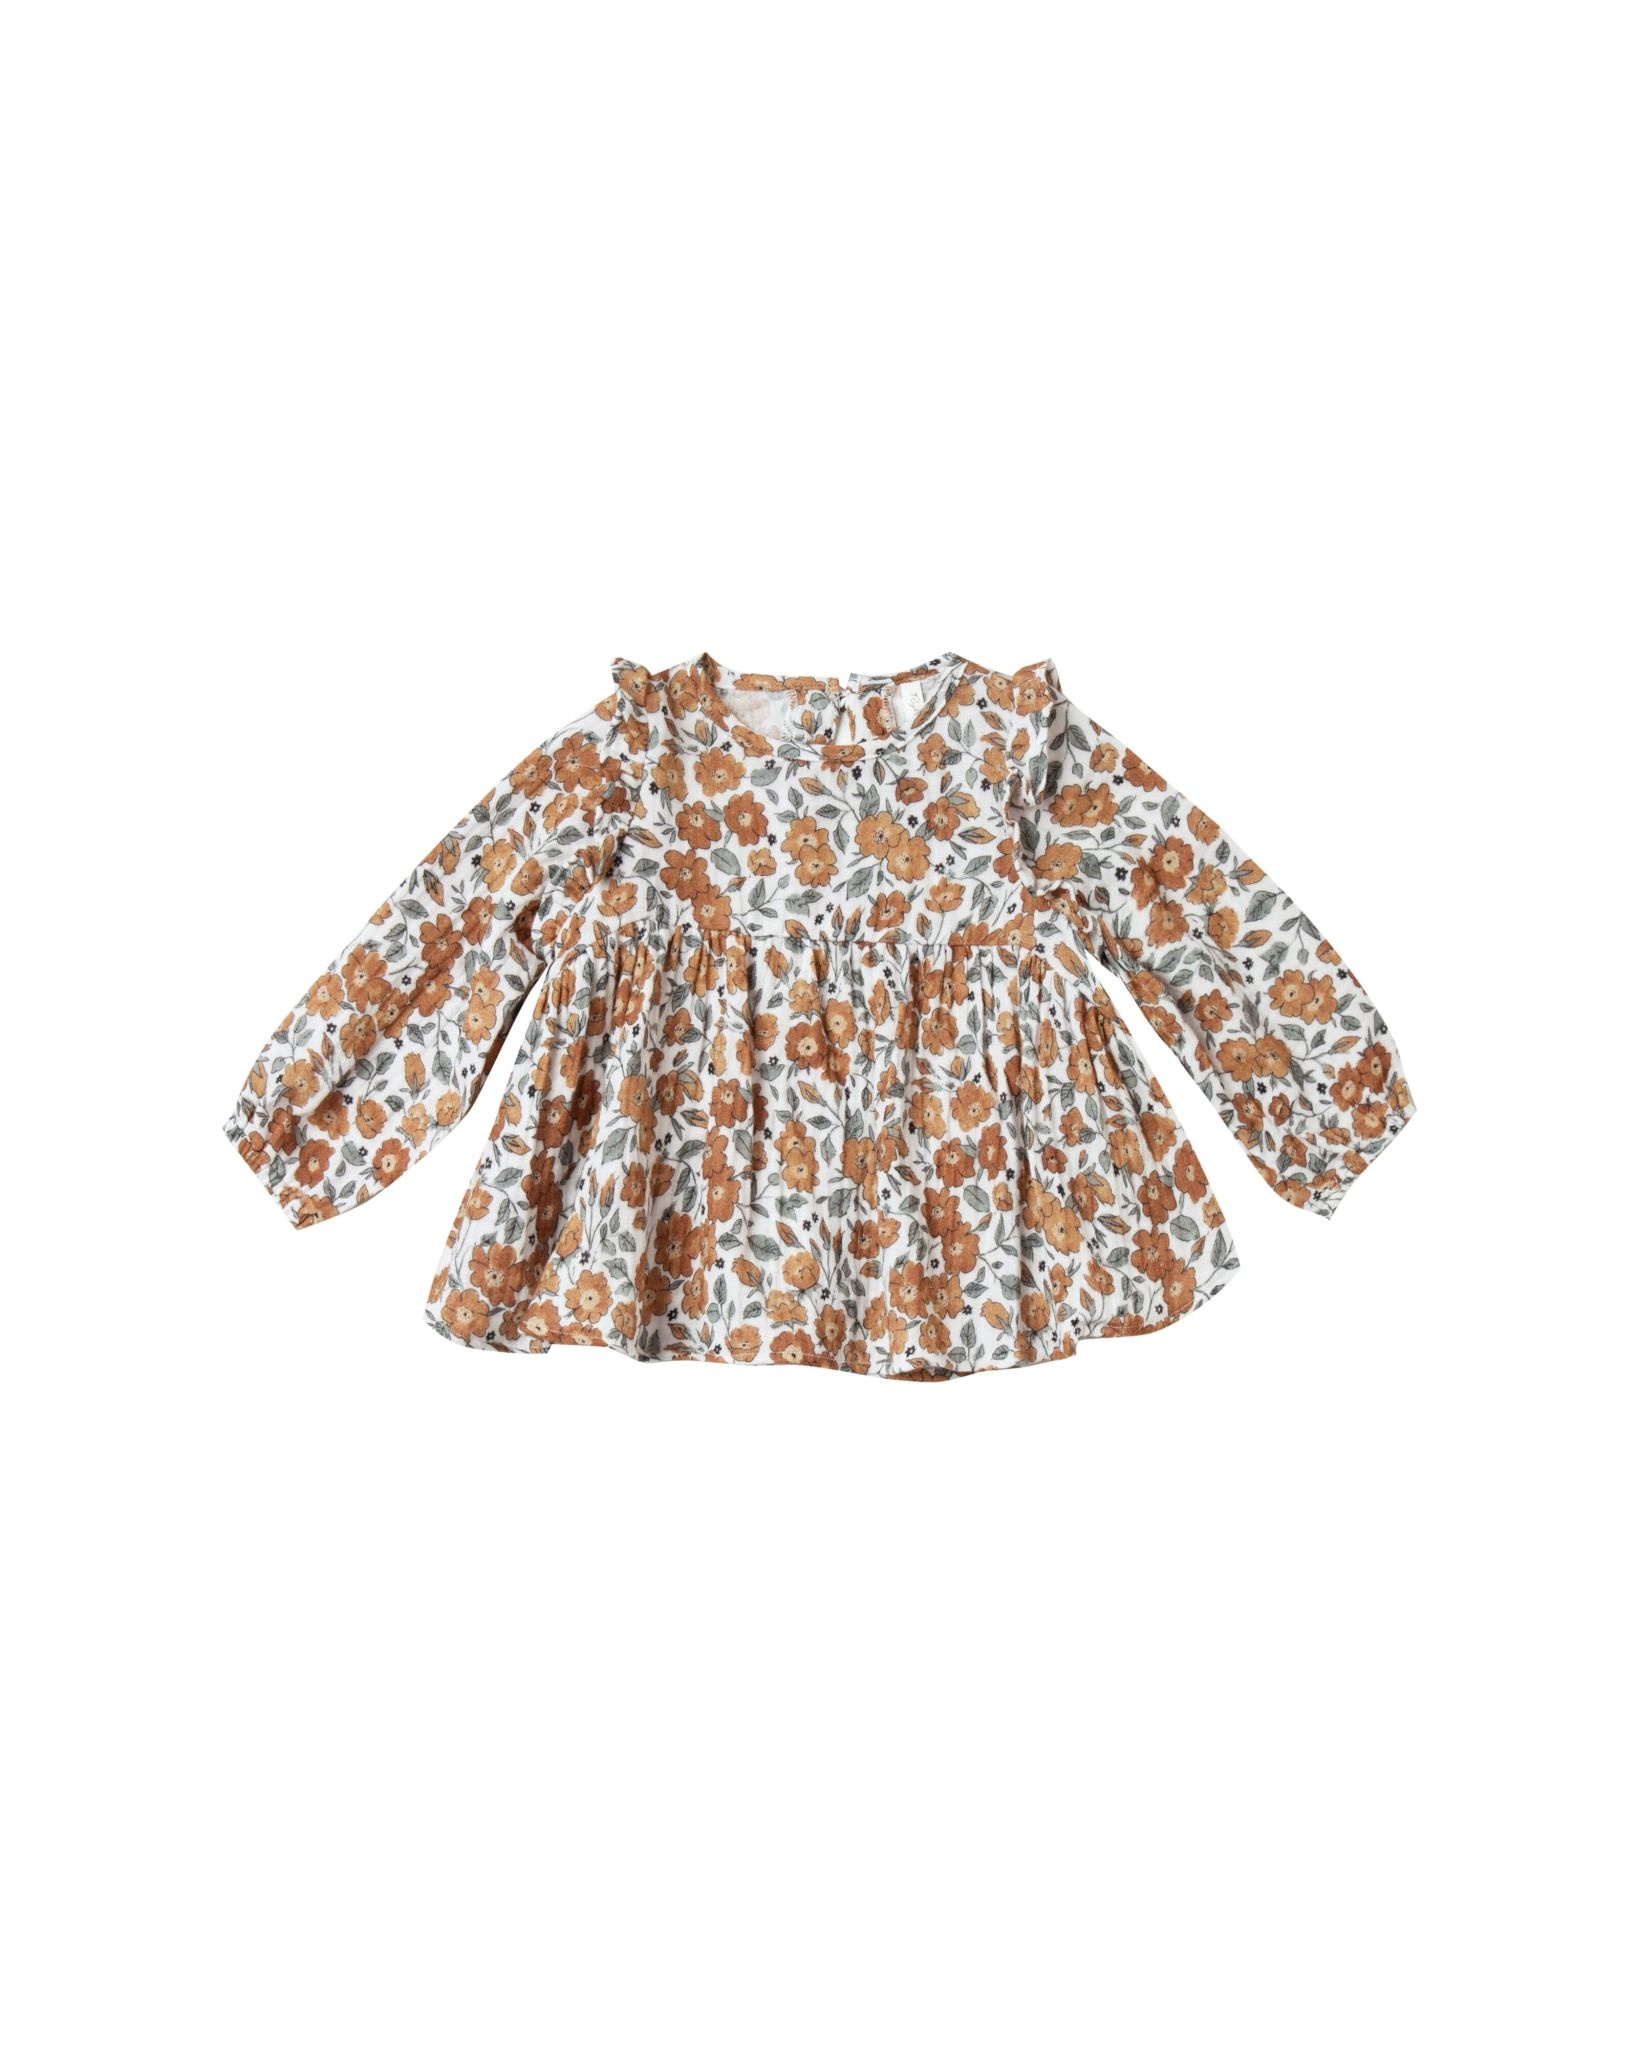 RYLEE AND CRU Piper Blouse